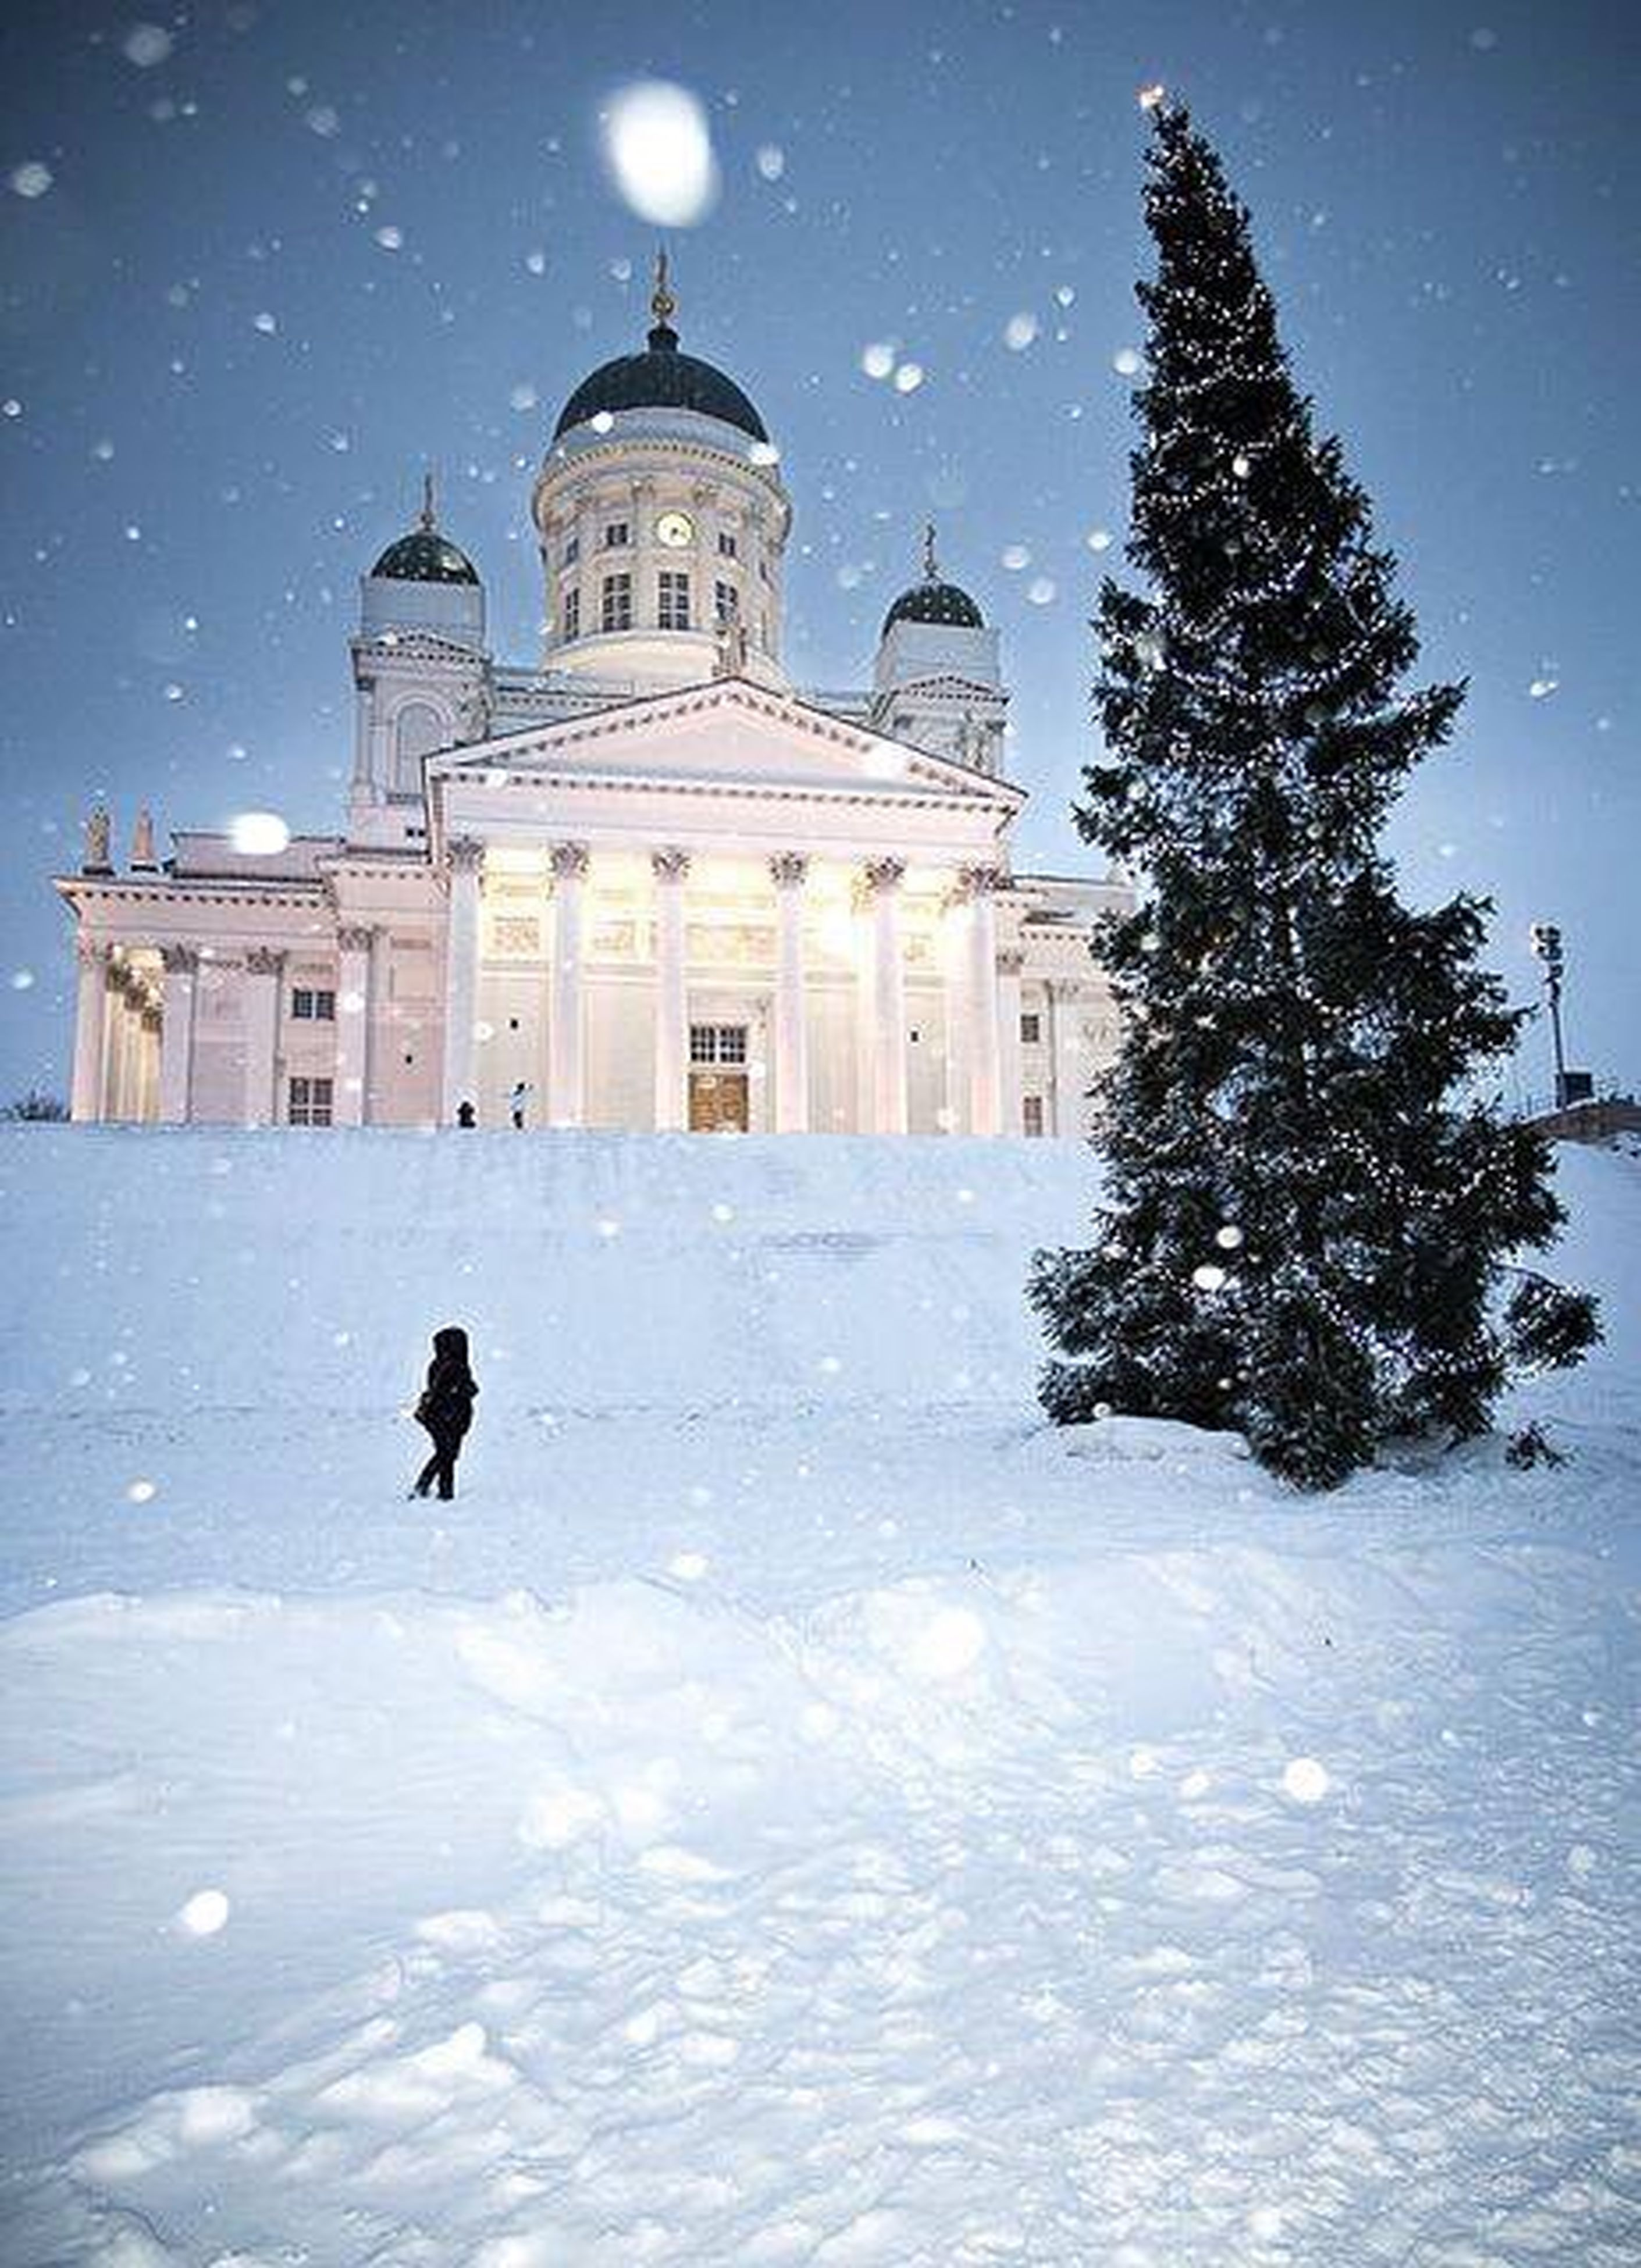 snow, winter, cold temperature, season, building exterior, architecture, built structure, weather, covering, sky, bare tree, walking, tree, frozen, white color, full length, religion, church